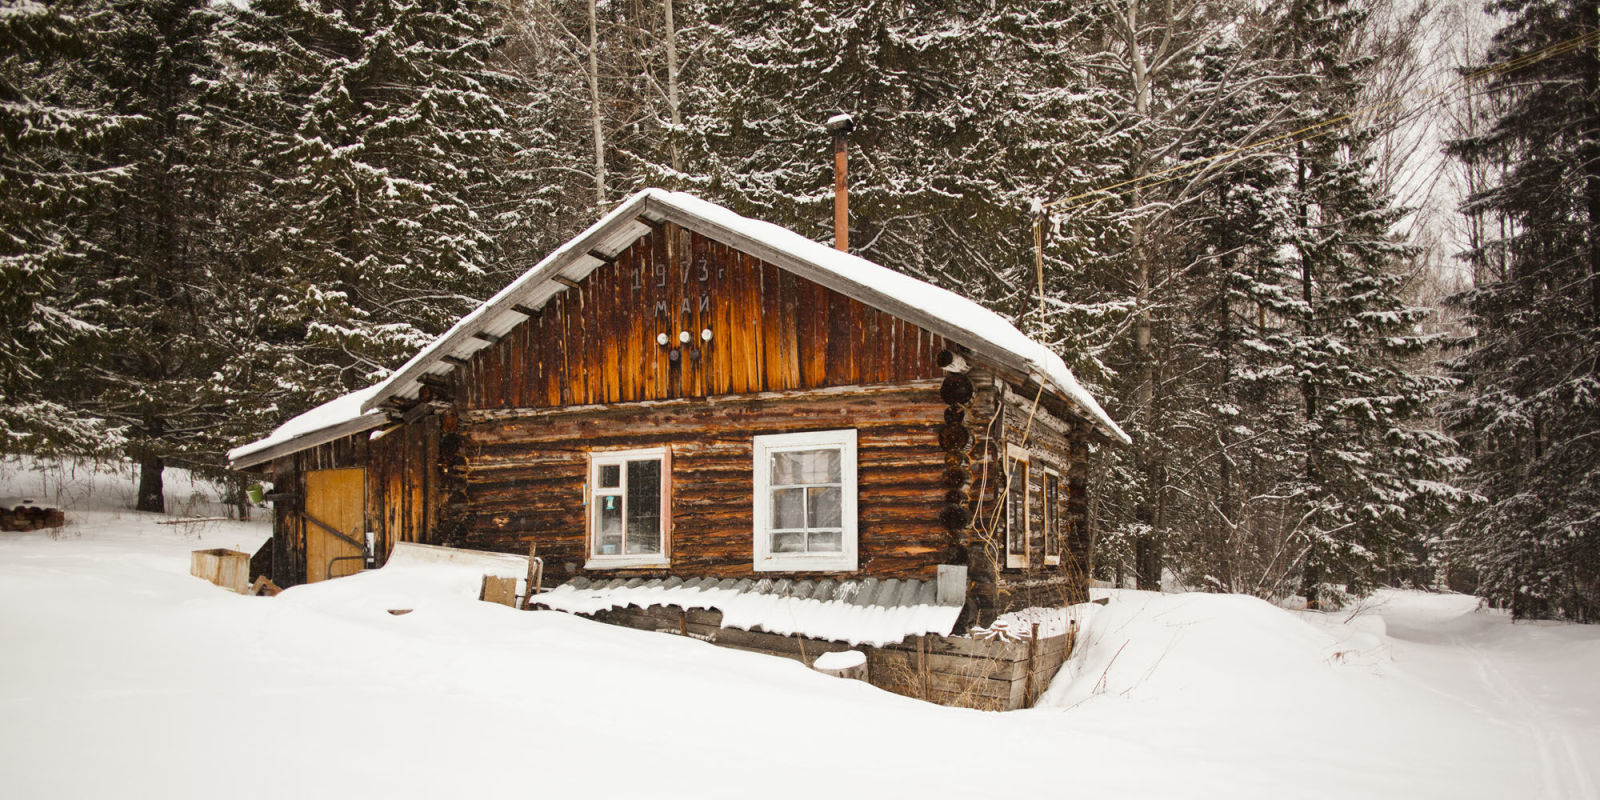 7 Rustic Log Homes For Sale Historic Homes For Sale